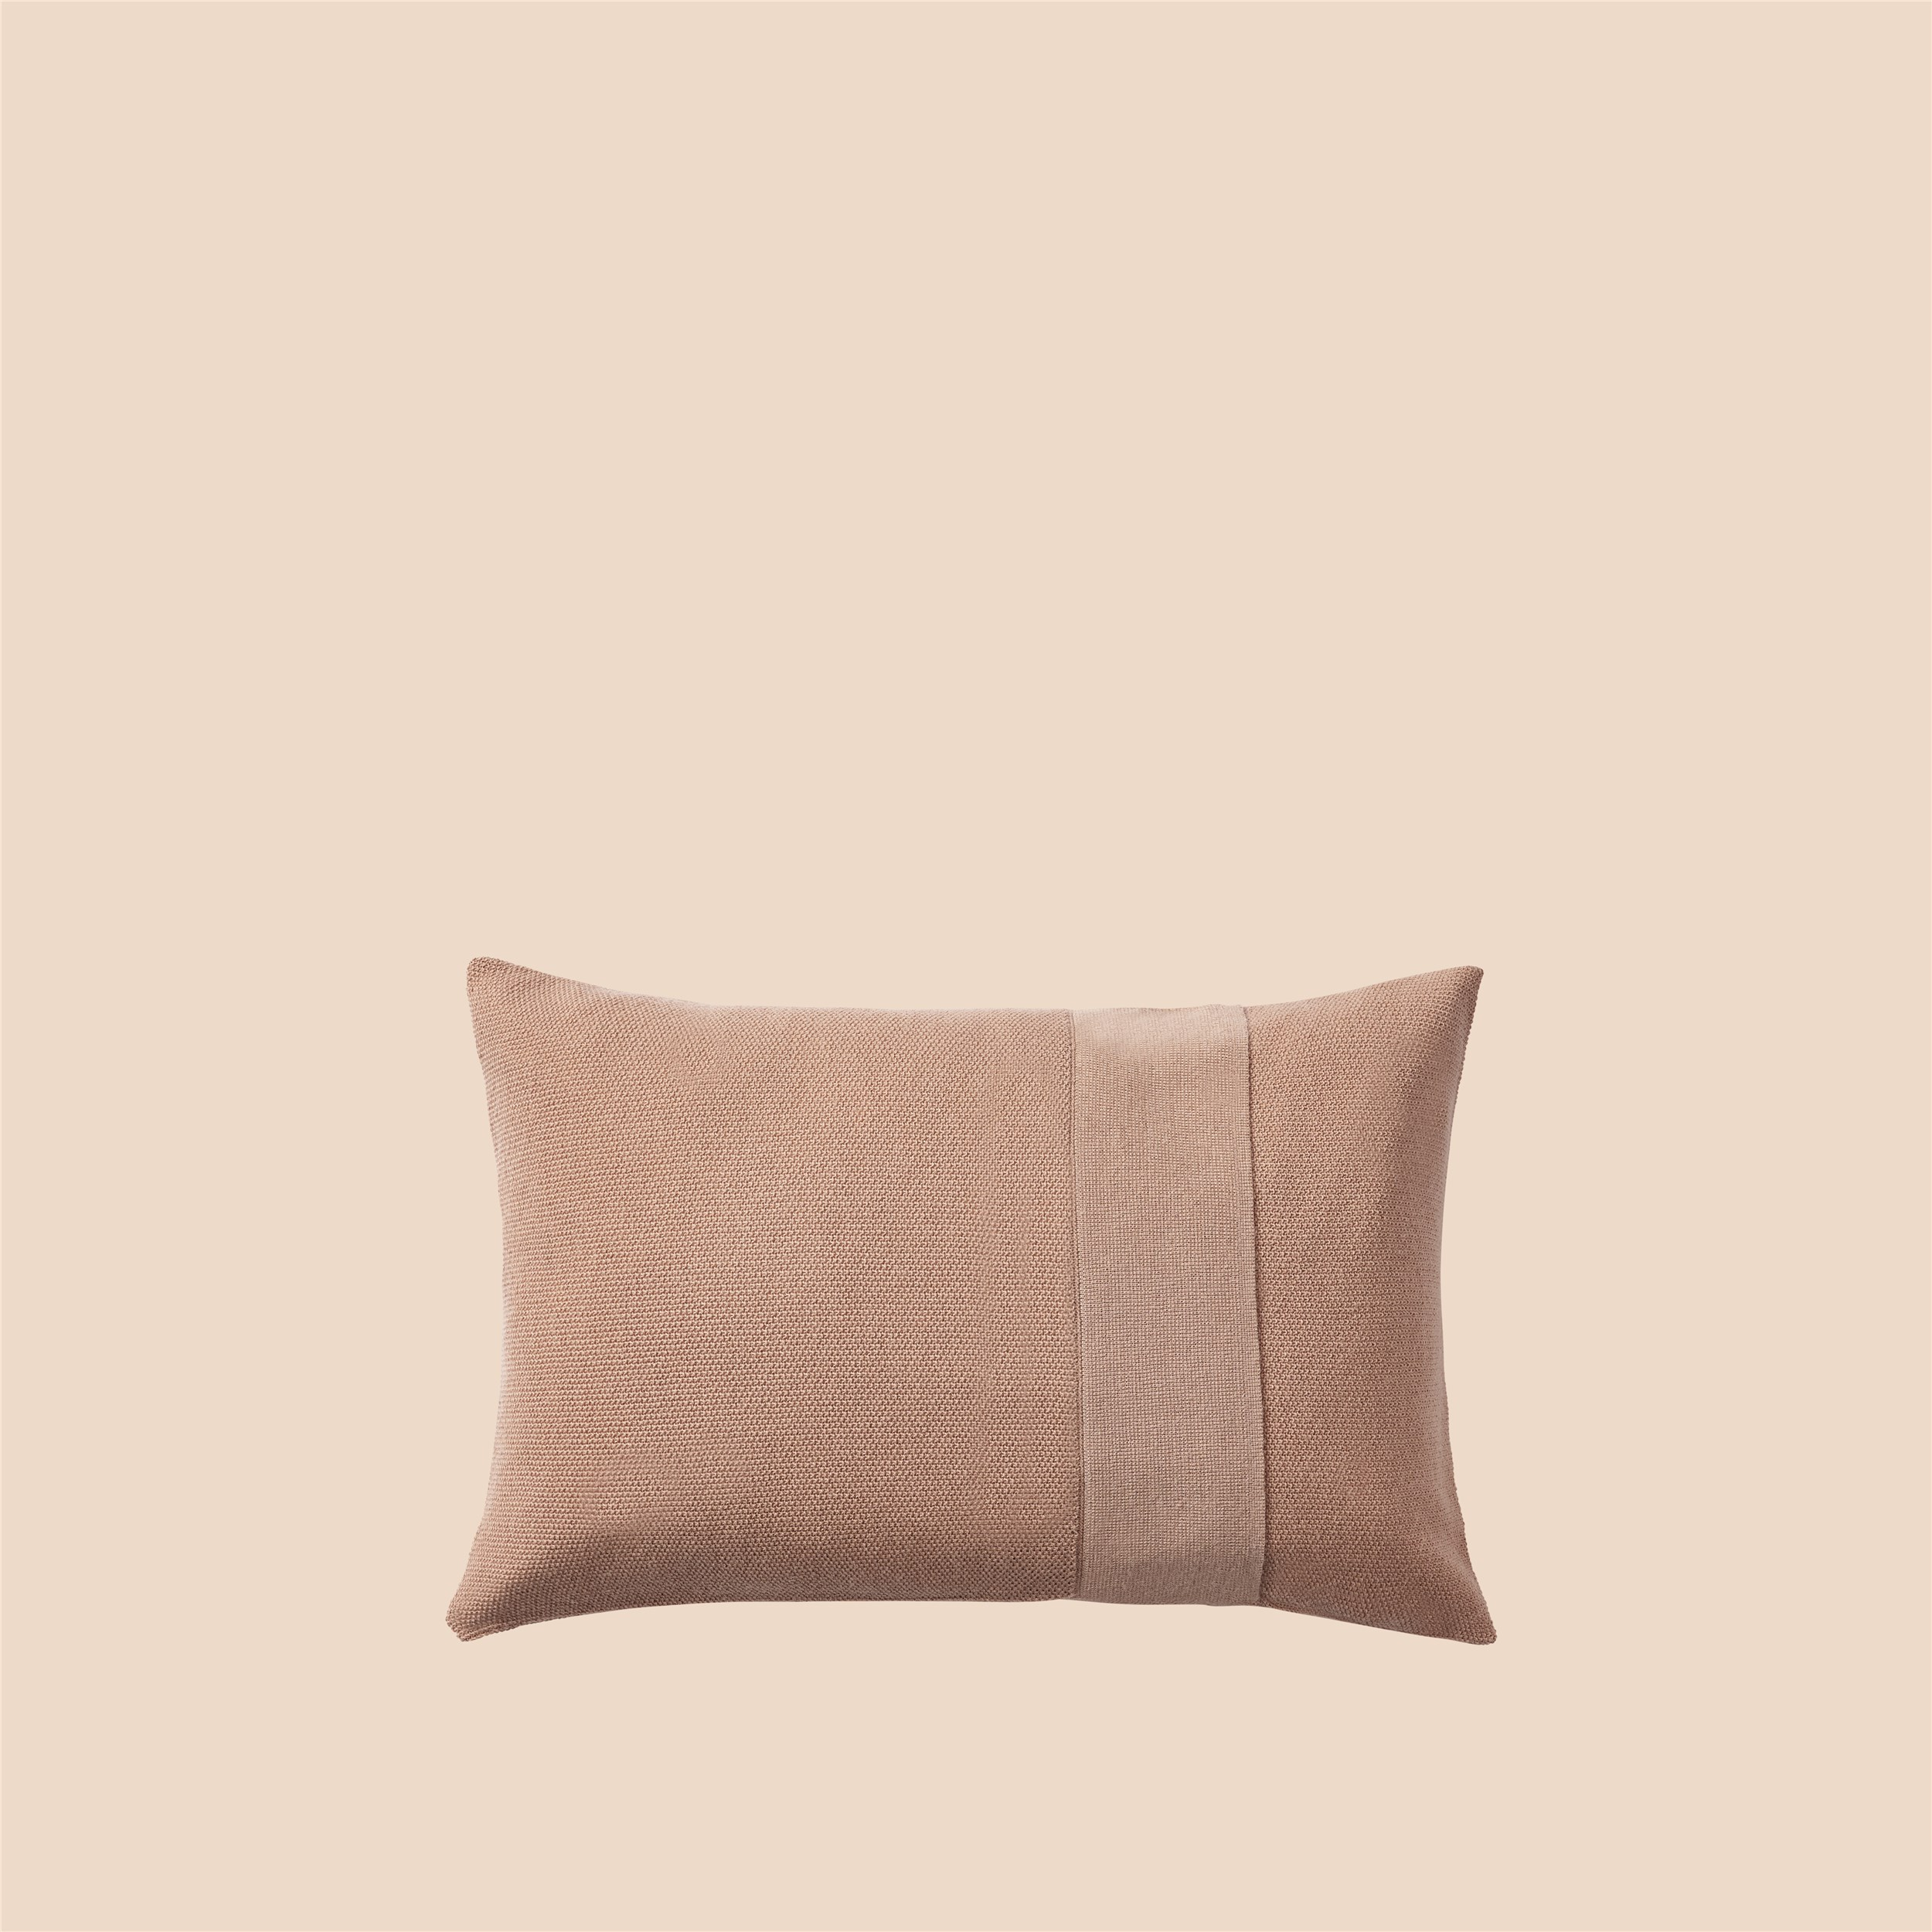 Layer Cushion 40x60 dusty rose